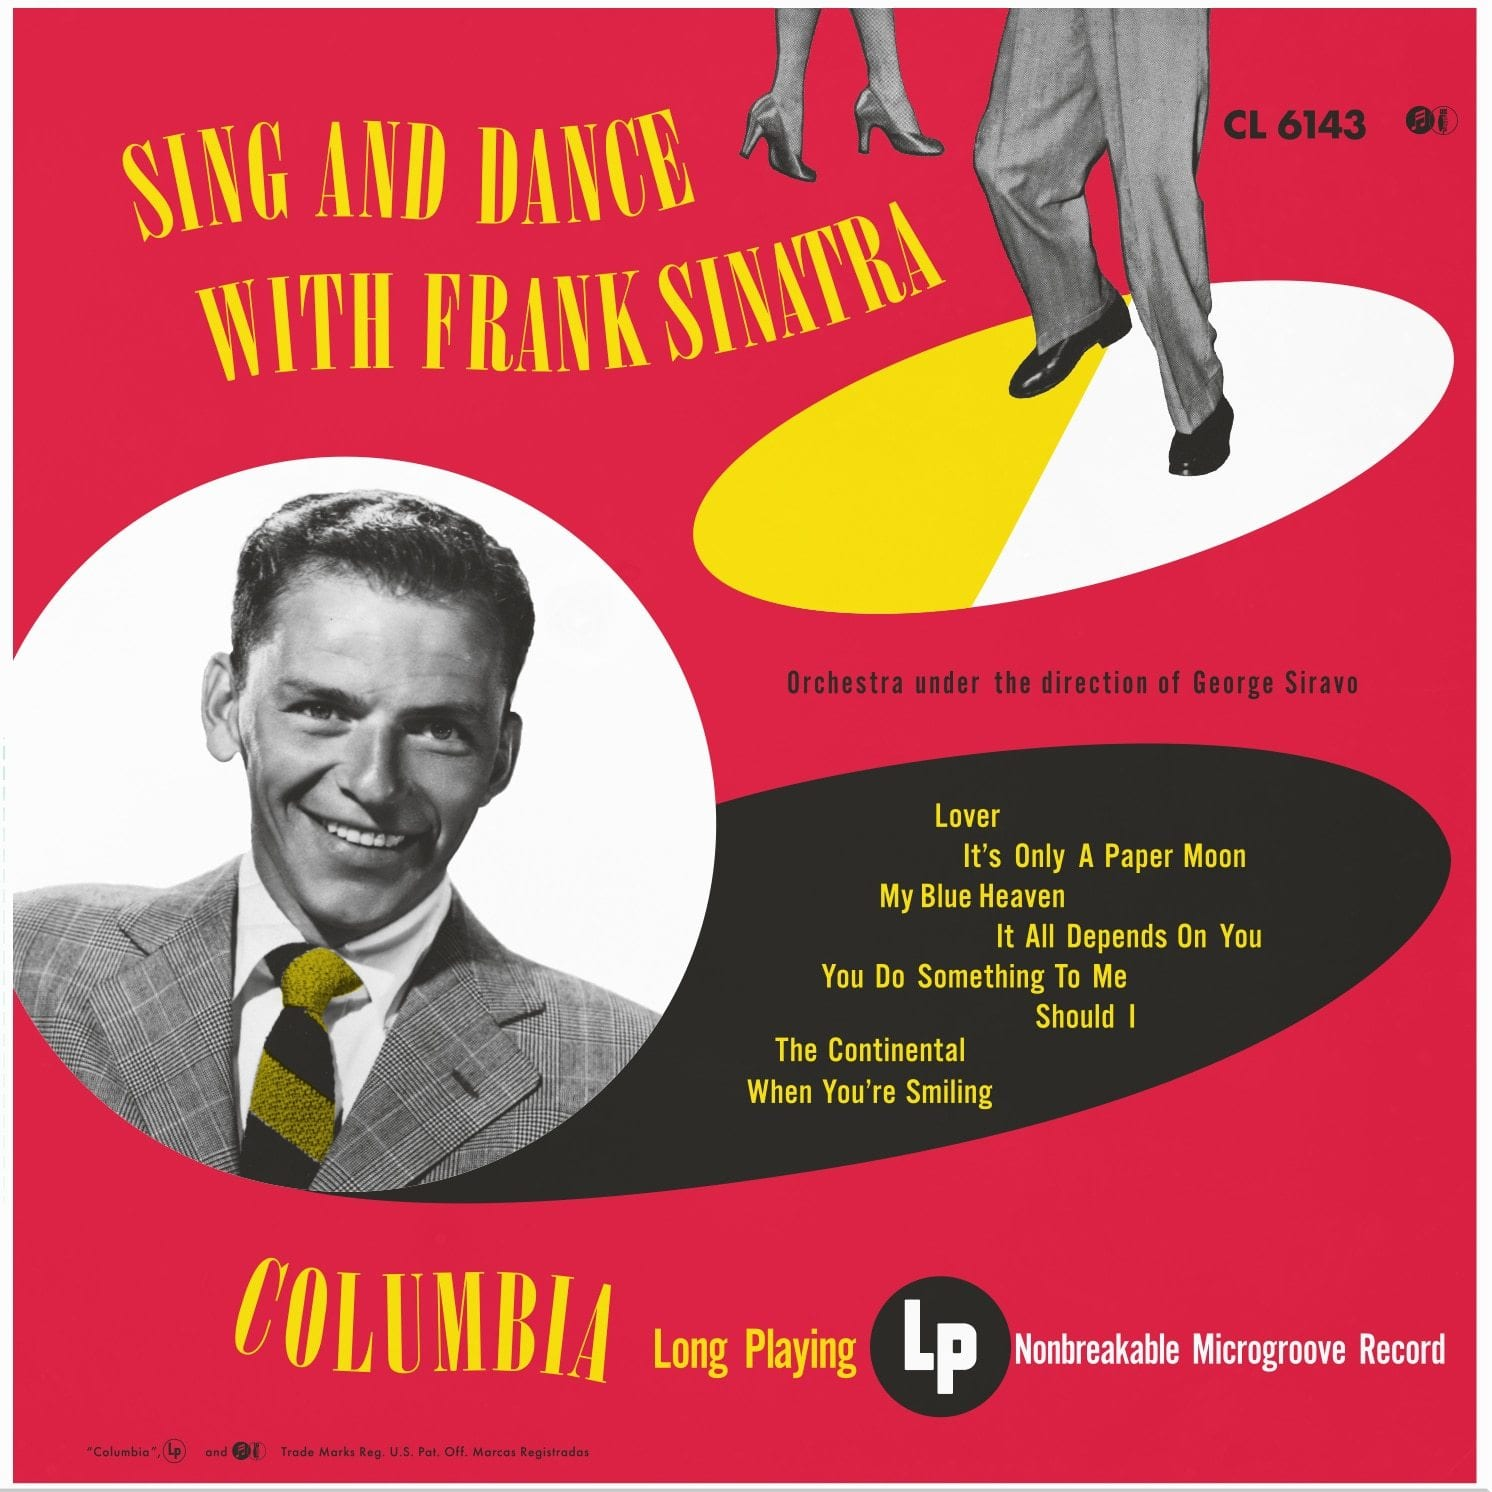 Frank Sinatra - Sing And Dance With Frank Sinatra [LP] (180 Gram Audiophile Vinyl, numbered/limited to 5000)